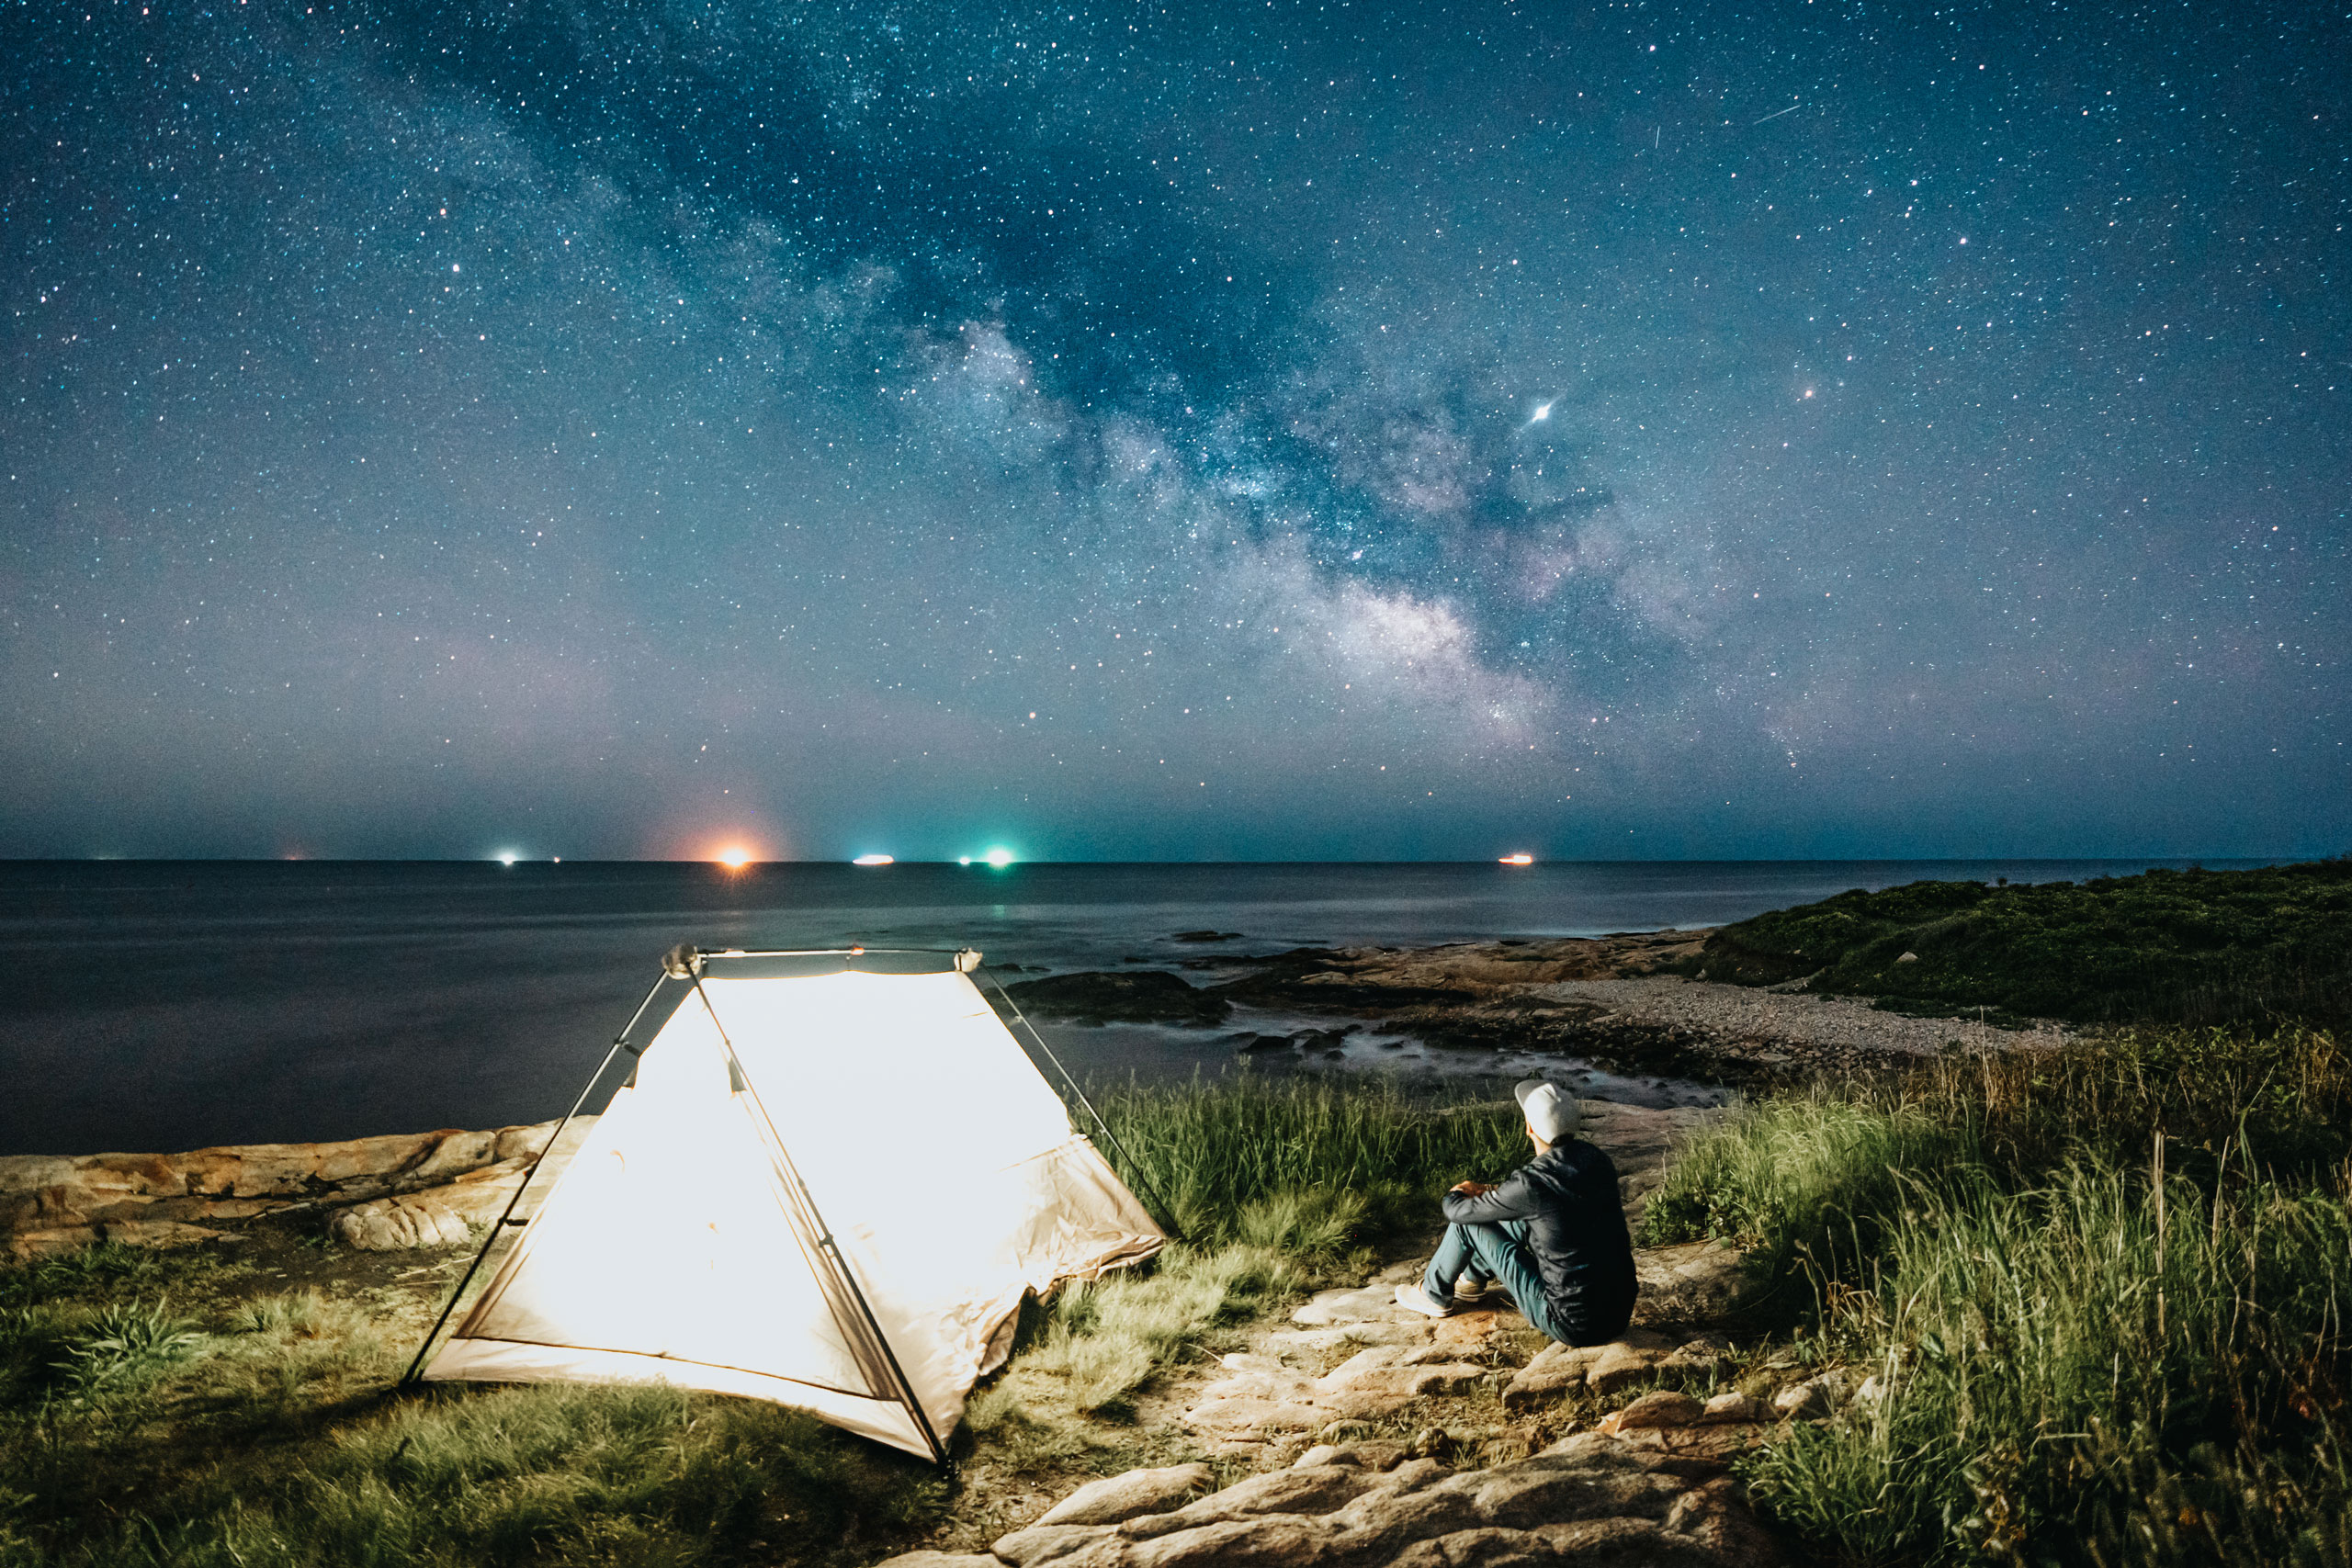 Corey Favino looking at the night sky over Narragansett